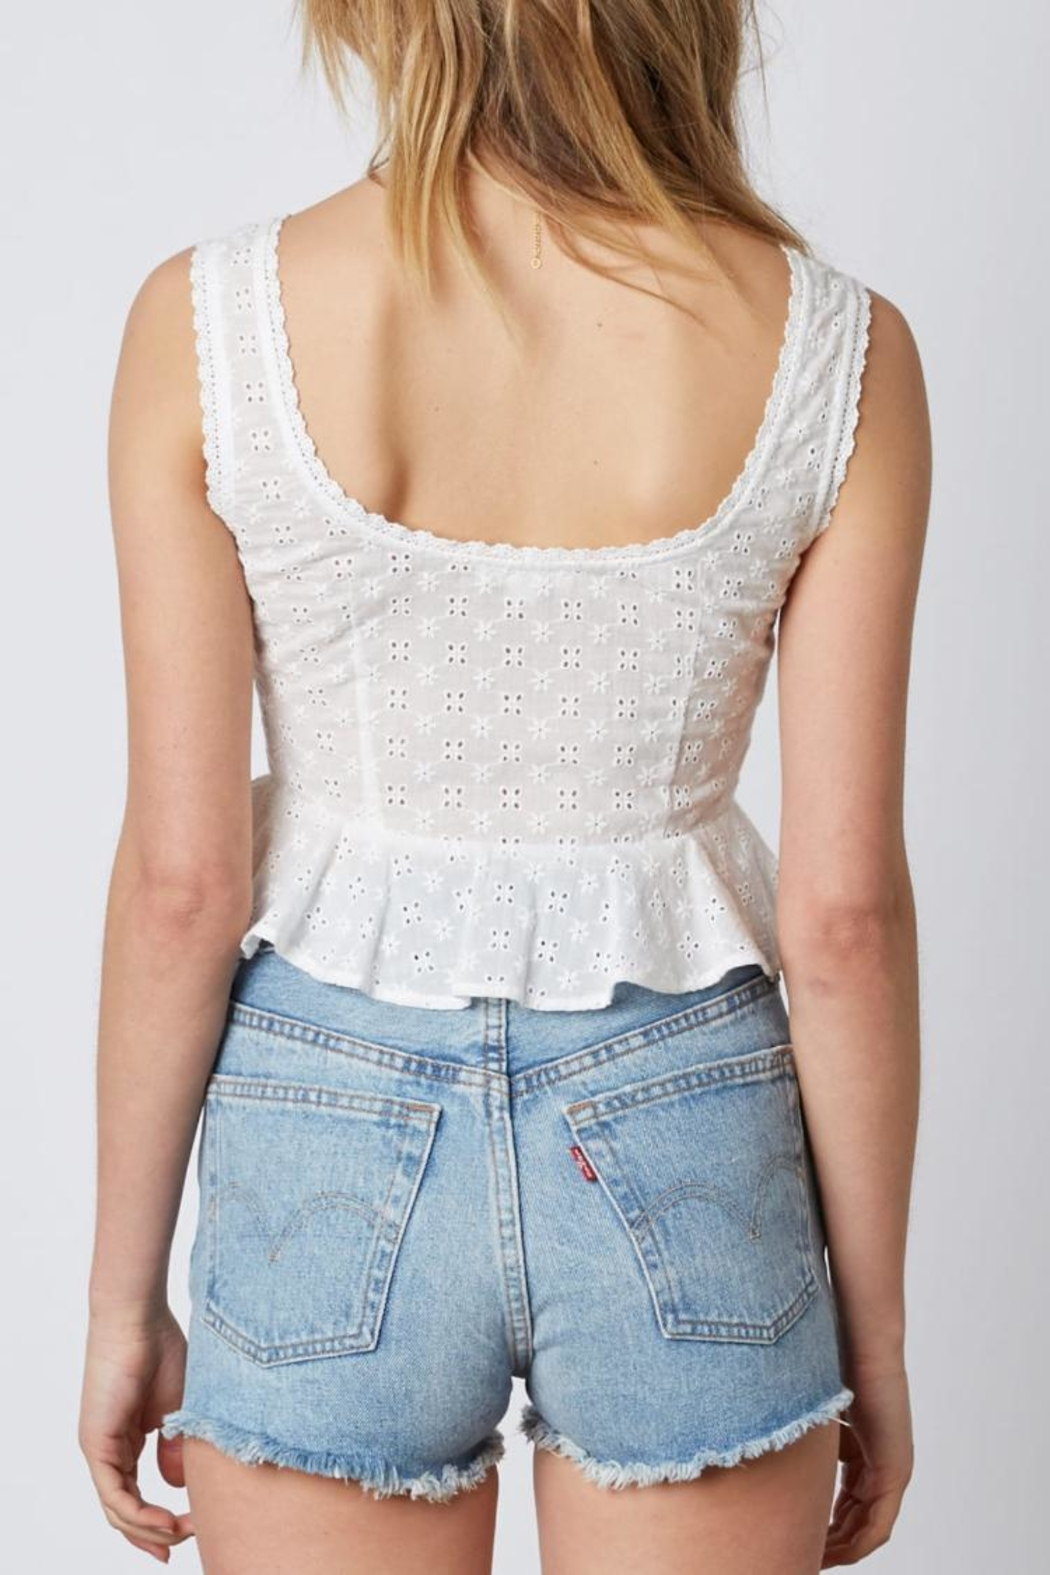 Cotton Candy LA White Crop Top - Front Full Image